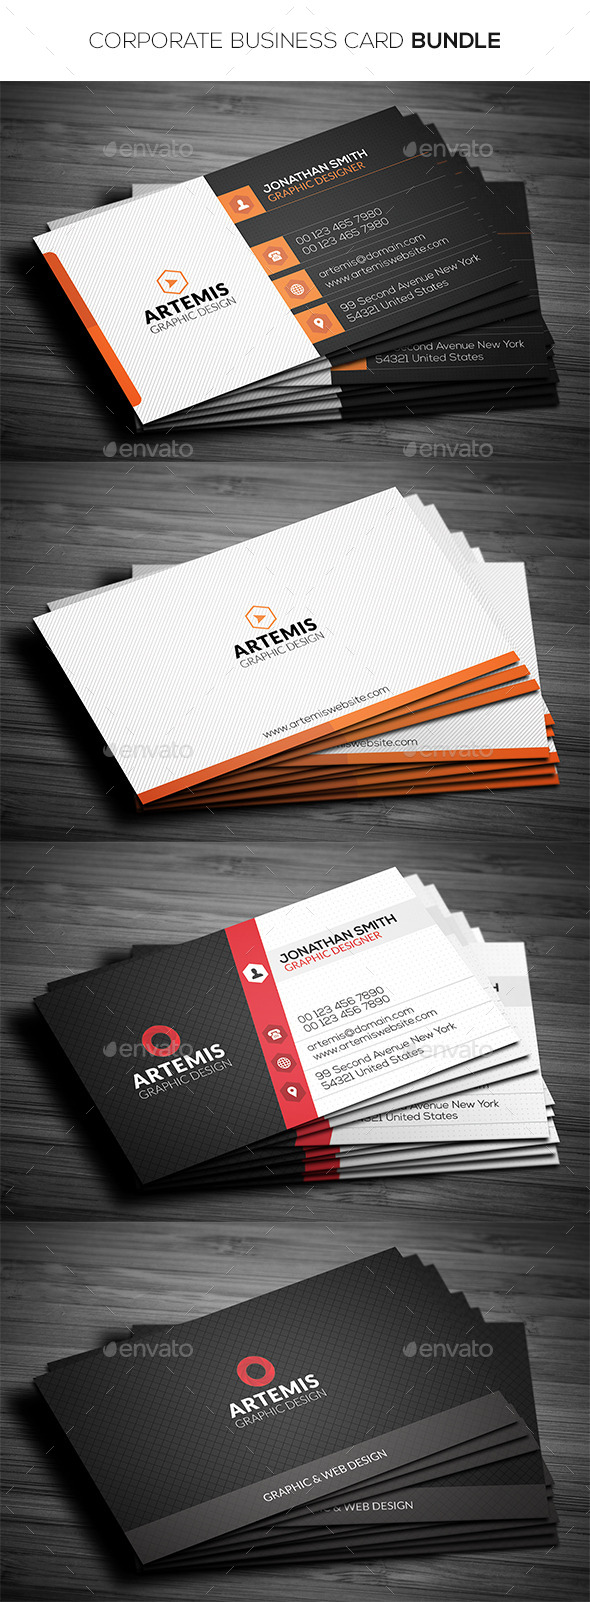 GraphicRiver 2 in 1 Corporate Business Card Bundle 11451662